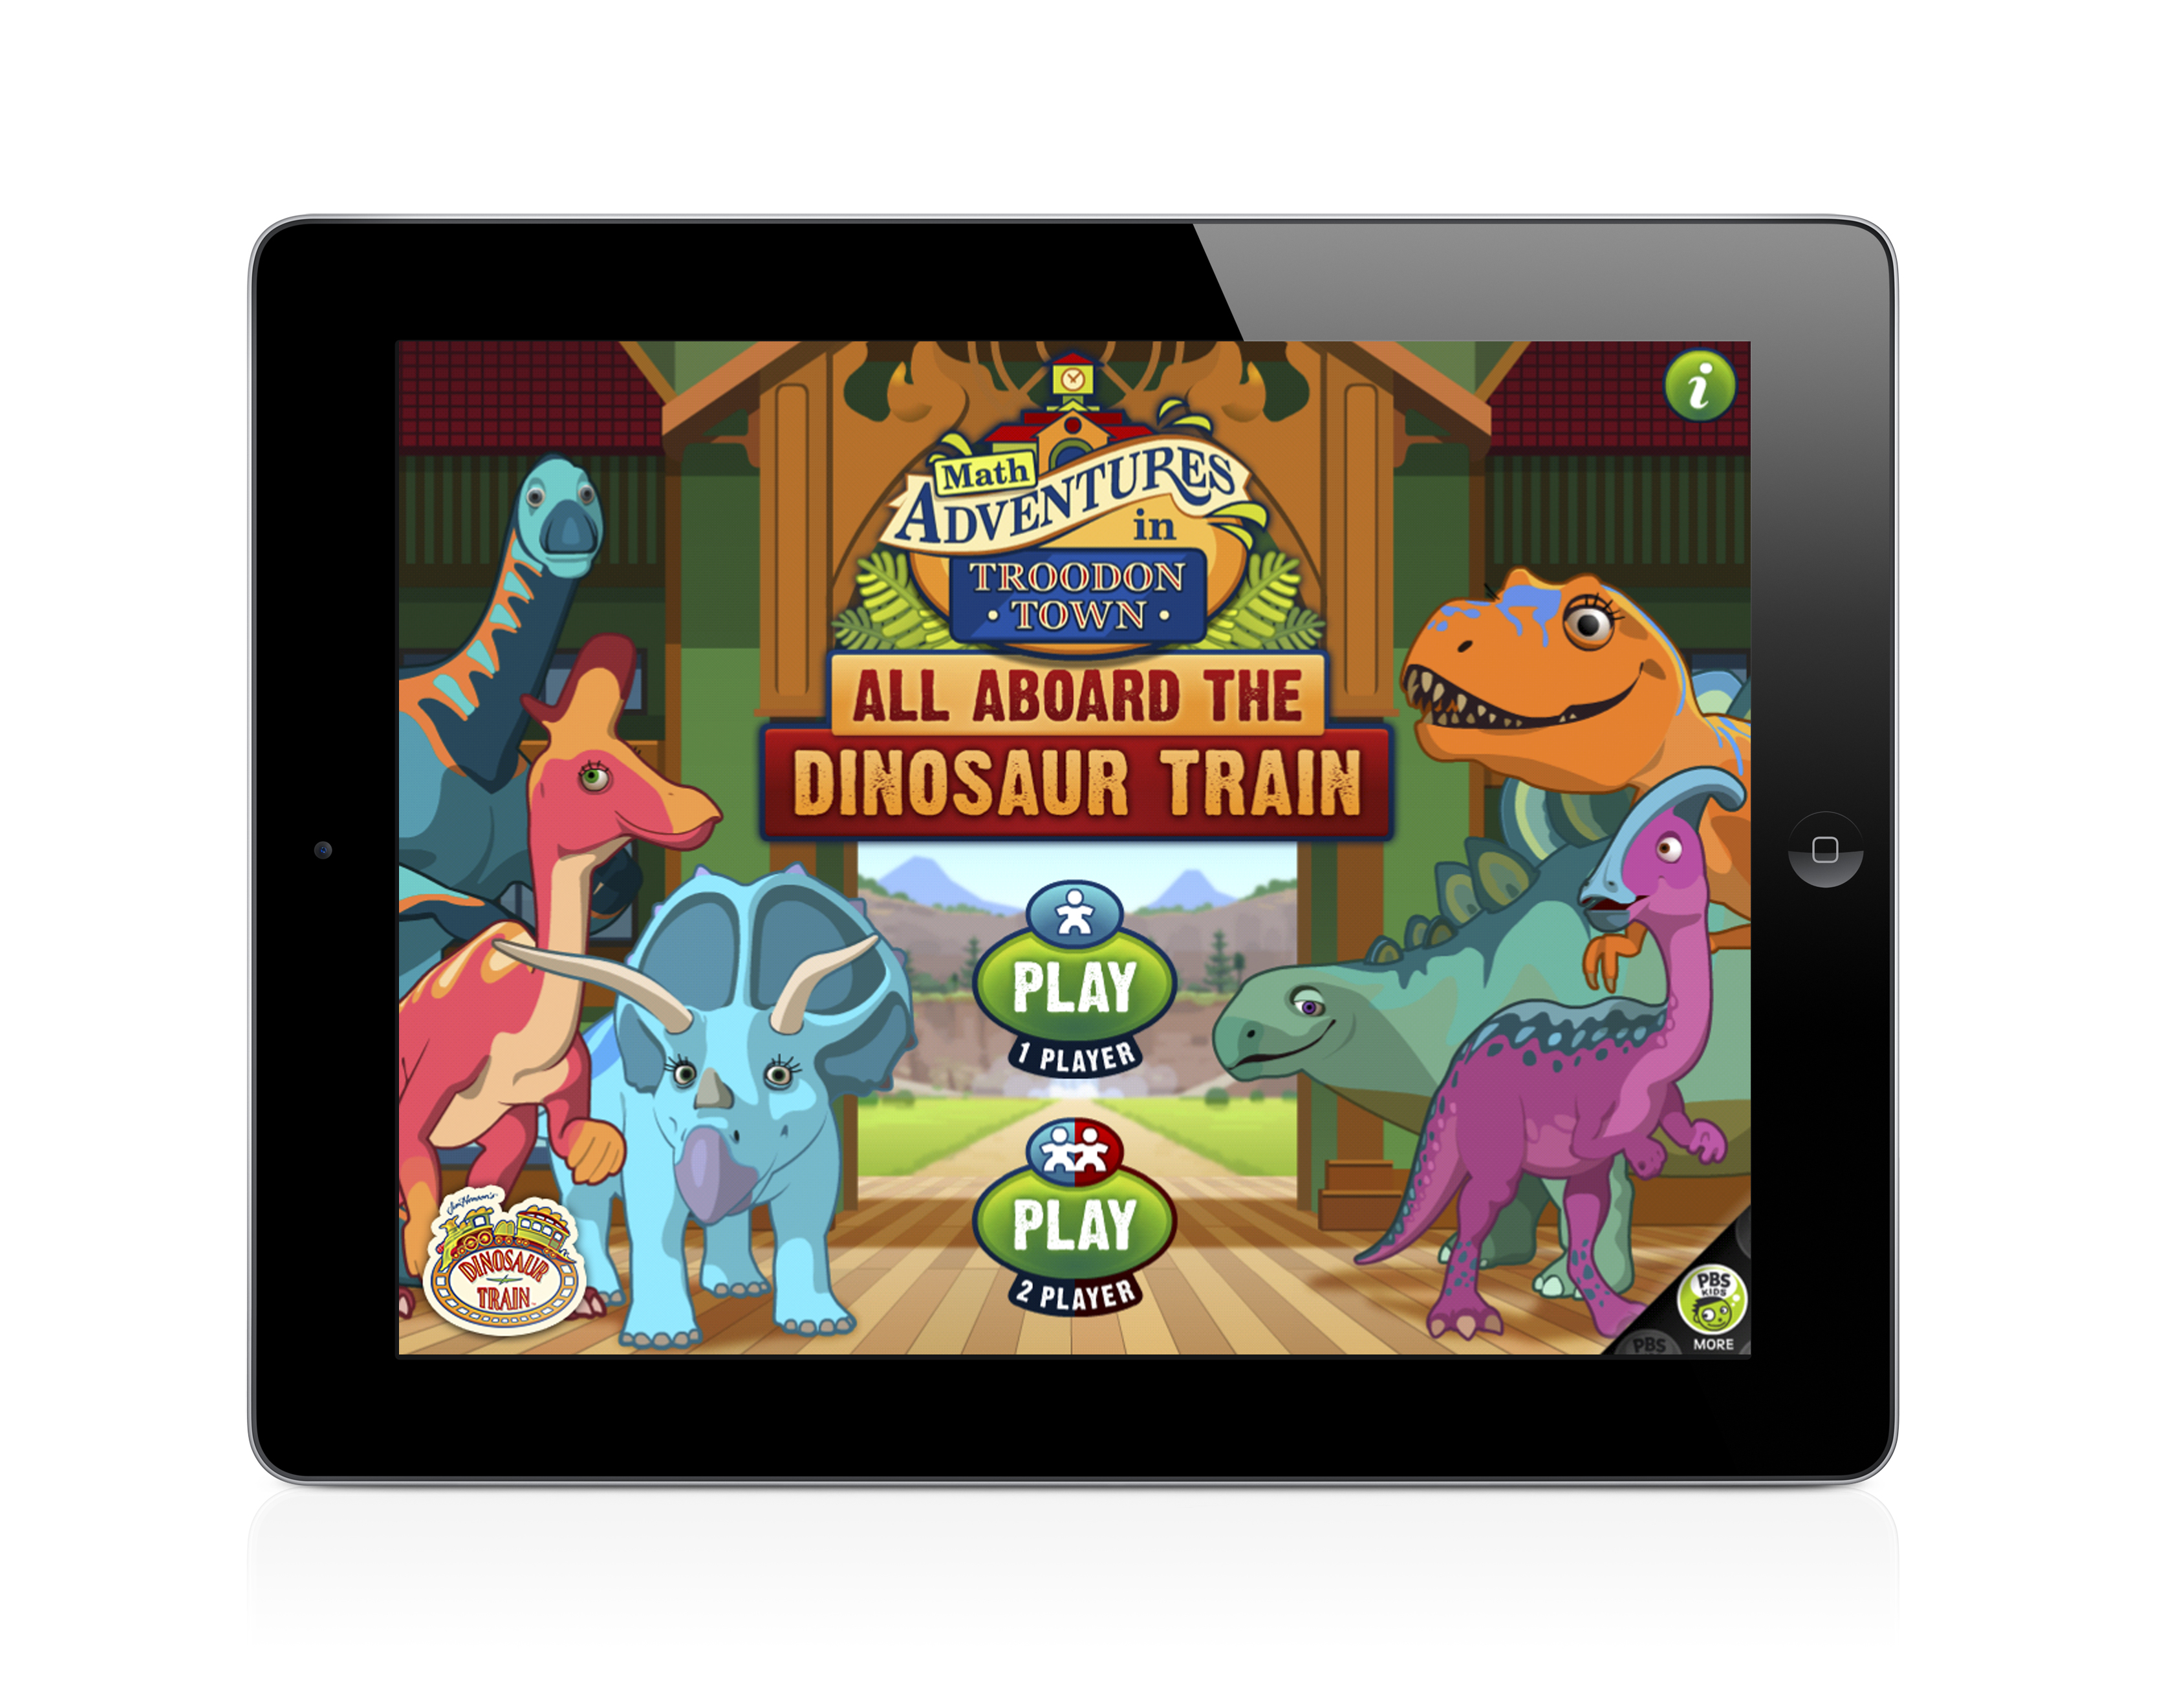 All Aboard the Dinosaur Train! App for iPad Review